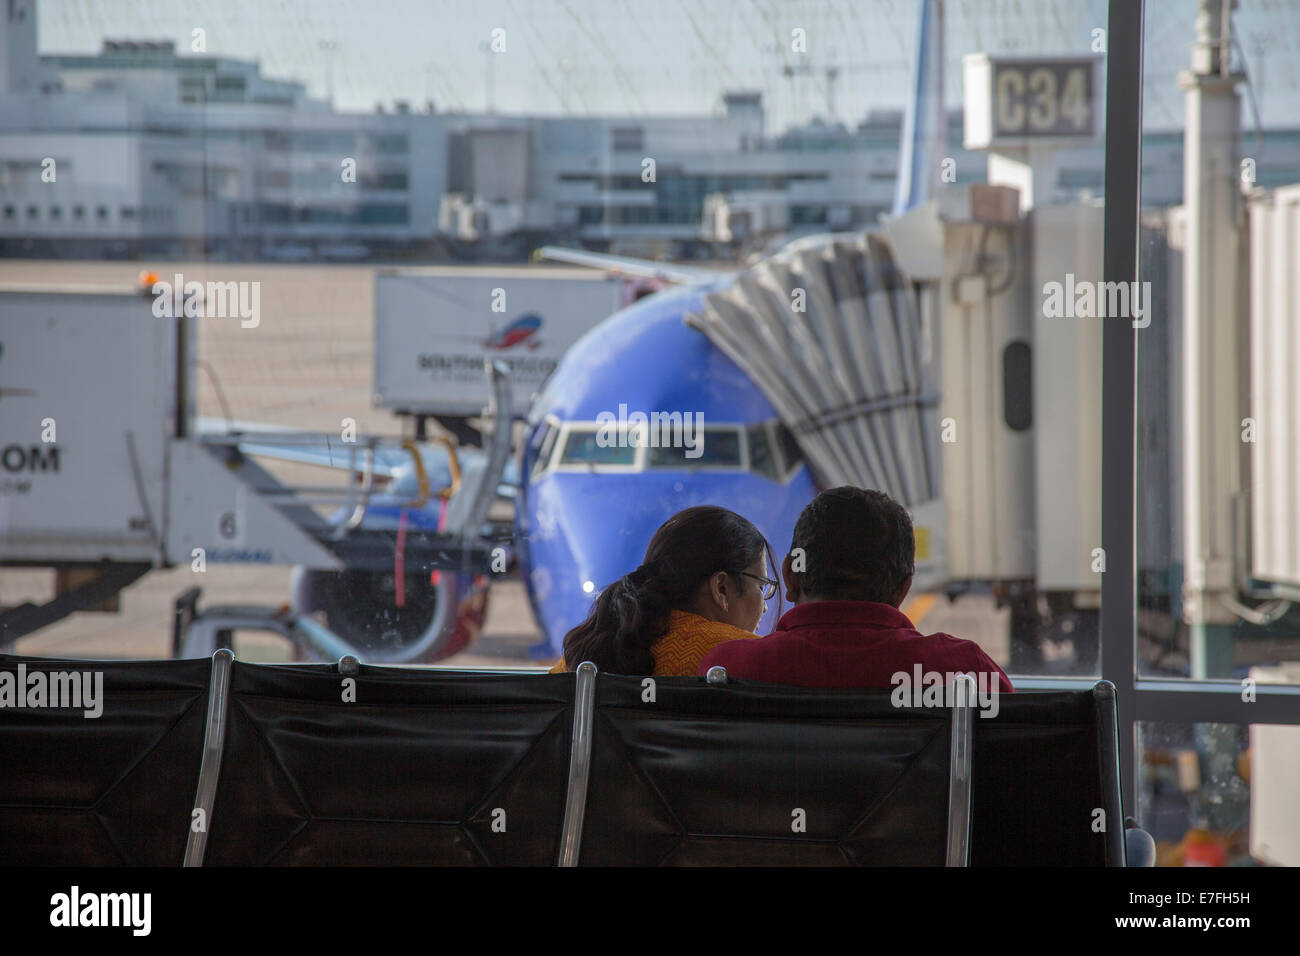 Denver, Colorado - A couple waits for their flight at Denver International Airport. - Stock Image